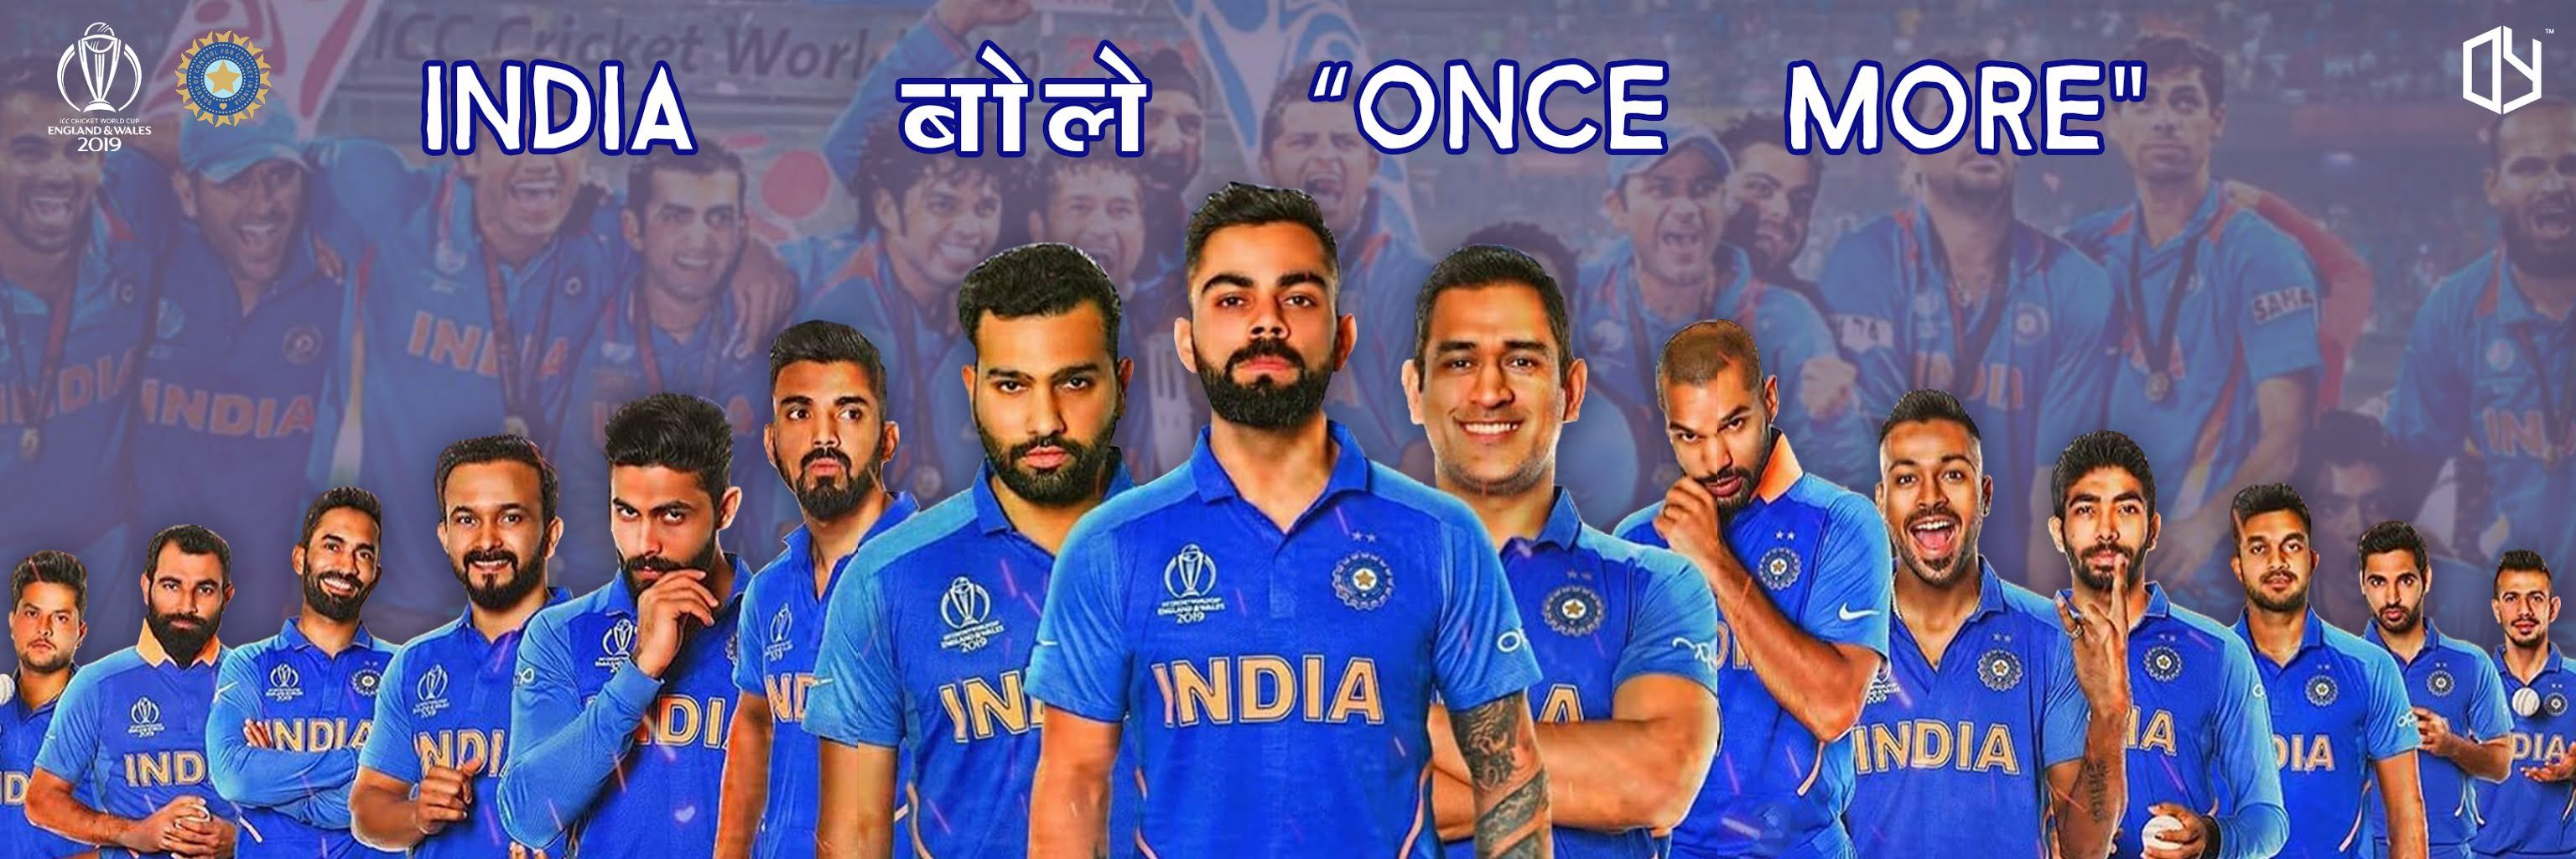 The World Cup Is Back India Cricket Team Cricket Teams World Cricket